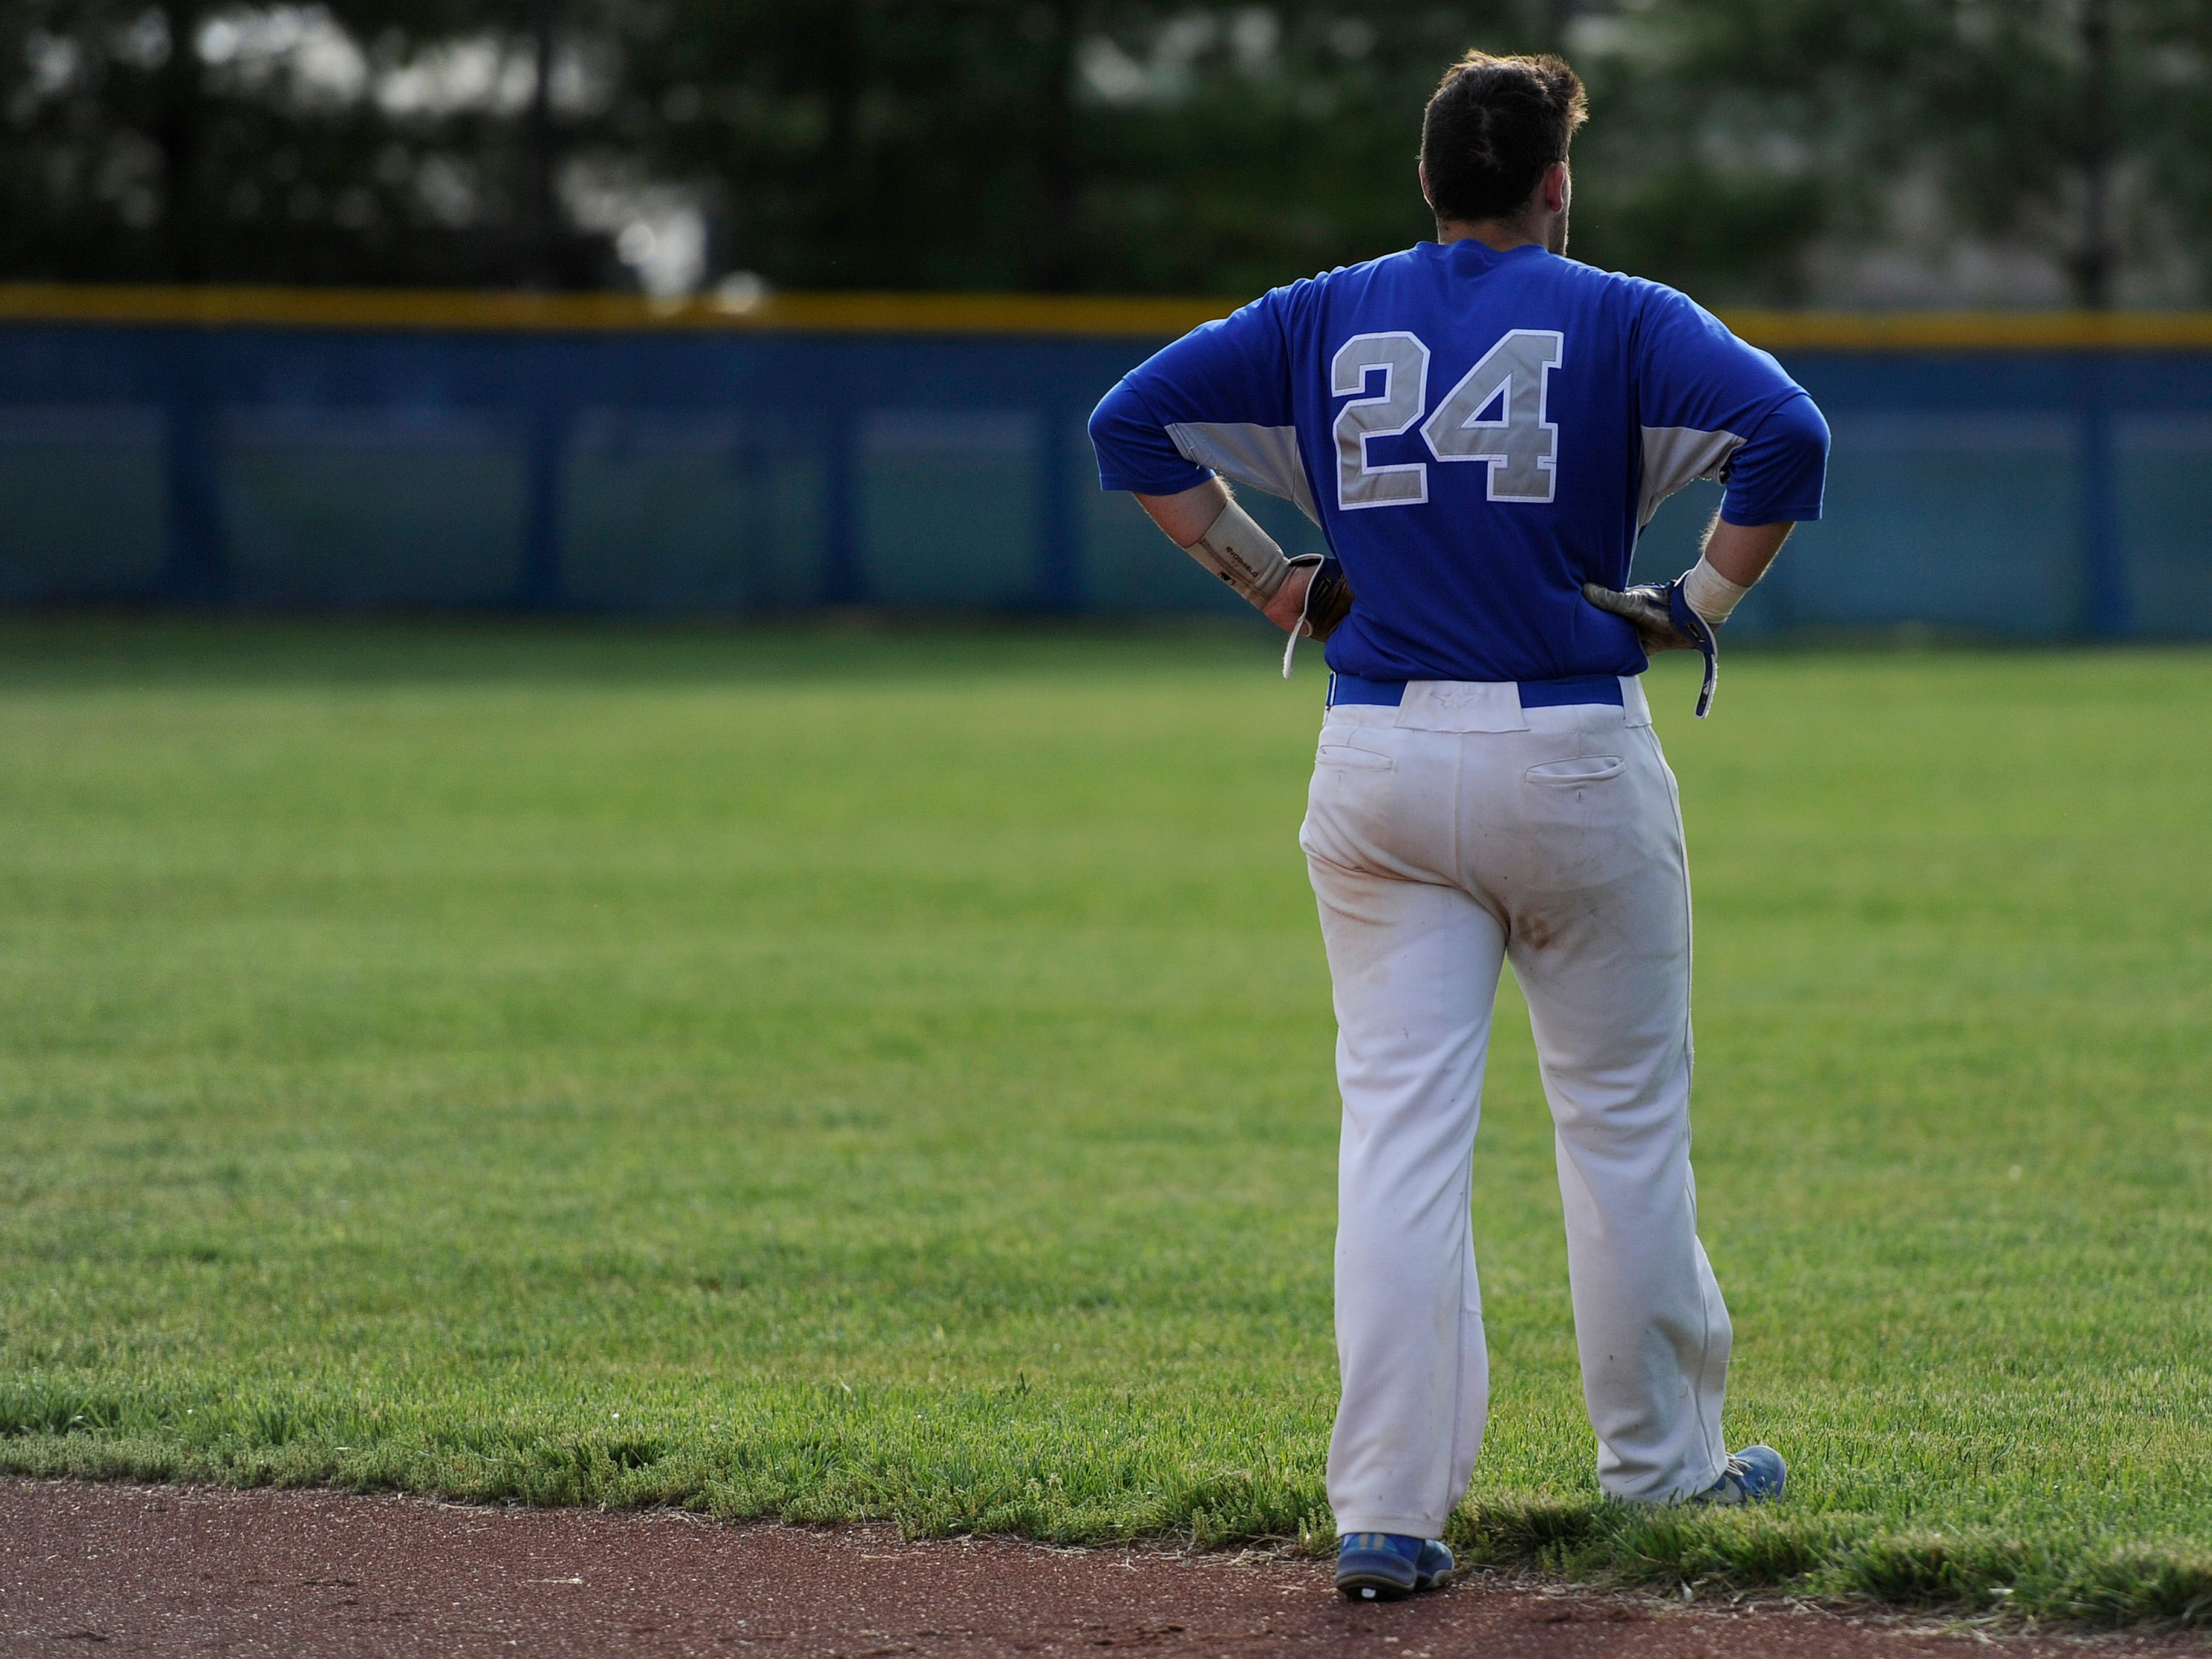 Chillicothe's Gage Jones takes a moment in the outfield after getting out at first base, ending another runless innning for the Cavalier's during the game against Licking Heights in the Division I Sectional Semi-Final at Chillicothe on Tuesday. The final score was Chillicothe 0, Licking Heights 5.